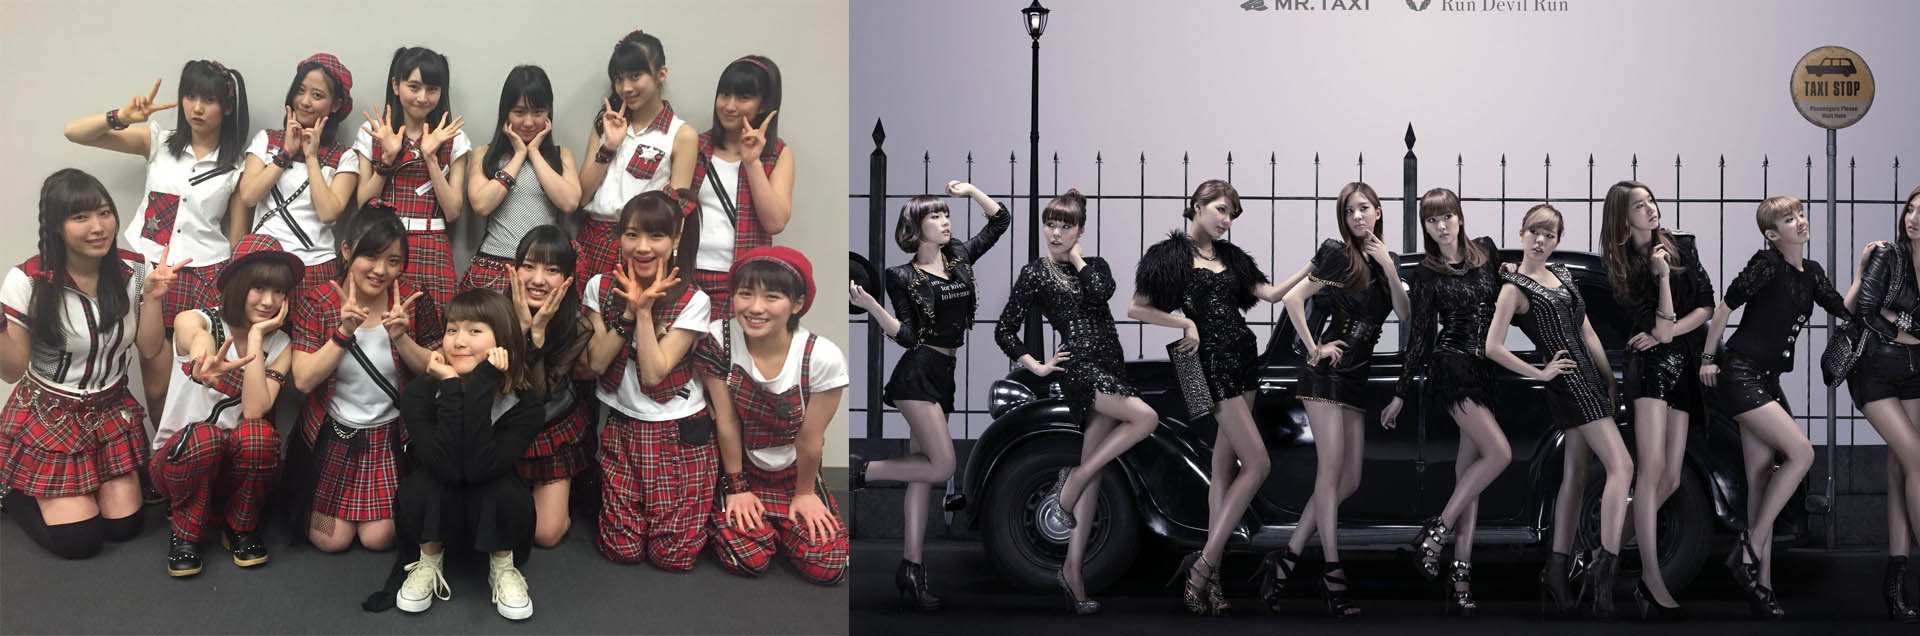 Morning Musume (J-Pop, Left), Gilrs Generation (K-Pop, Right)